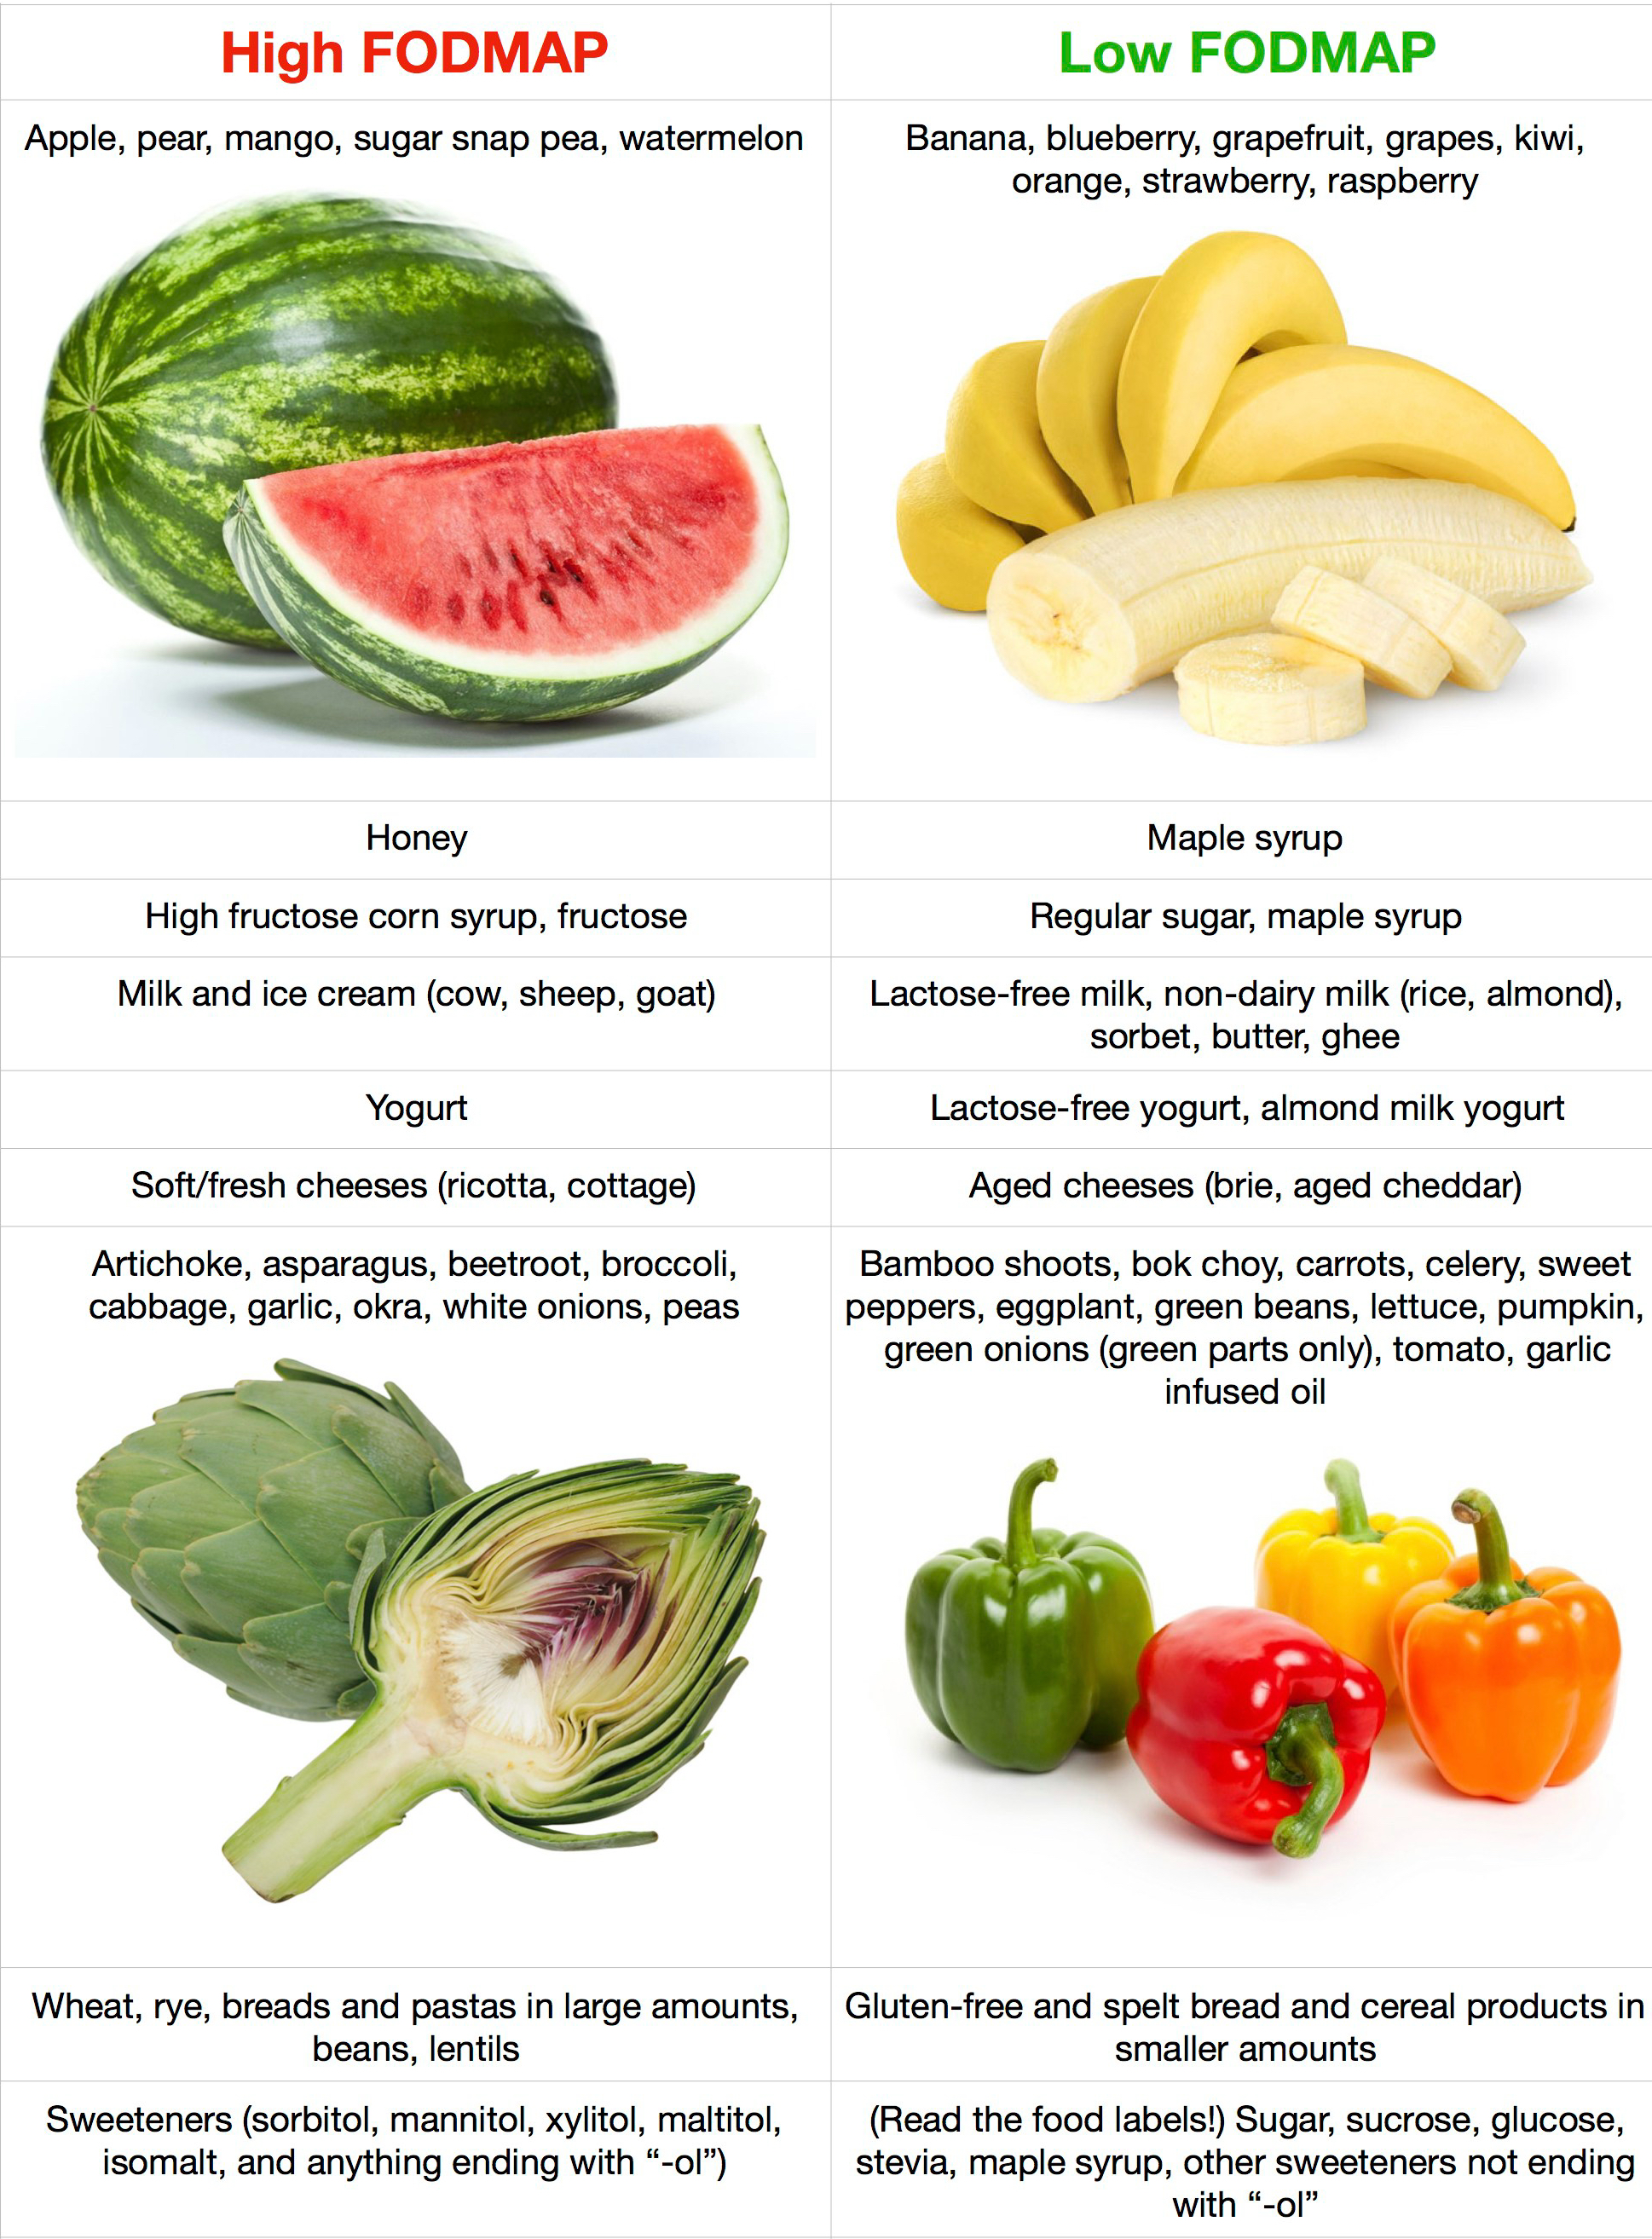 fodmap-table.jpg